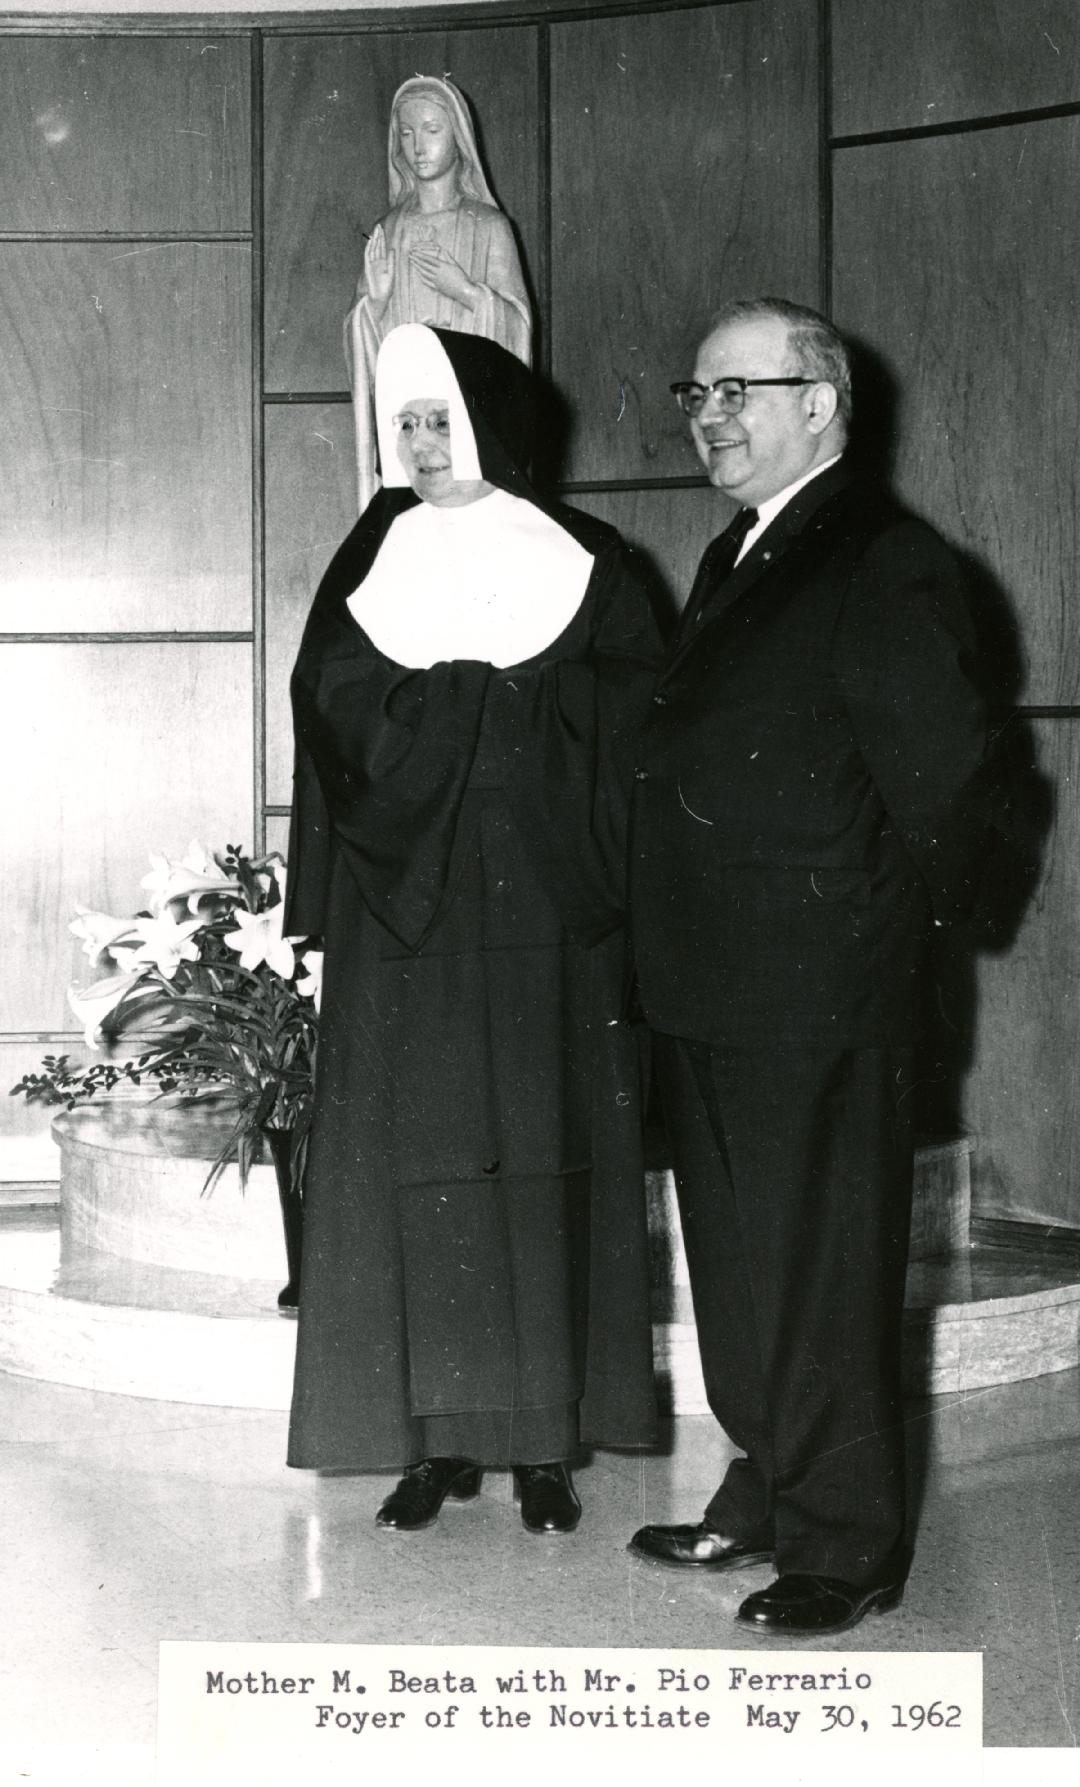 Mother Beata and Mr. Peo Ferrario, Foyer of the Novitiate, May 30, 1962